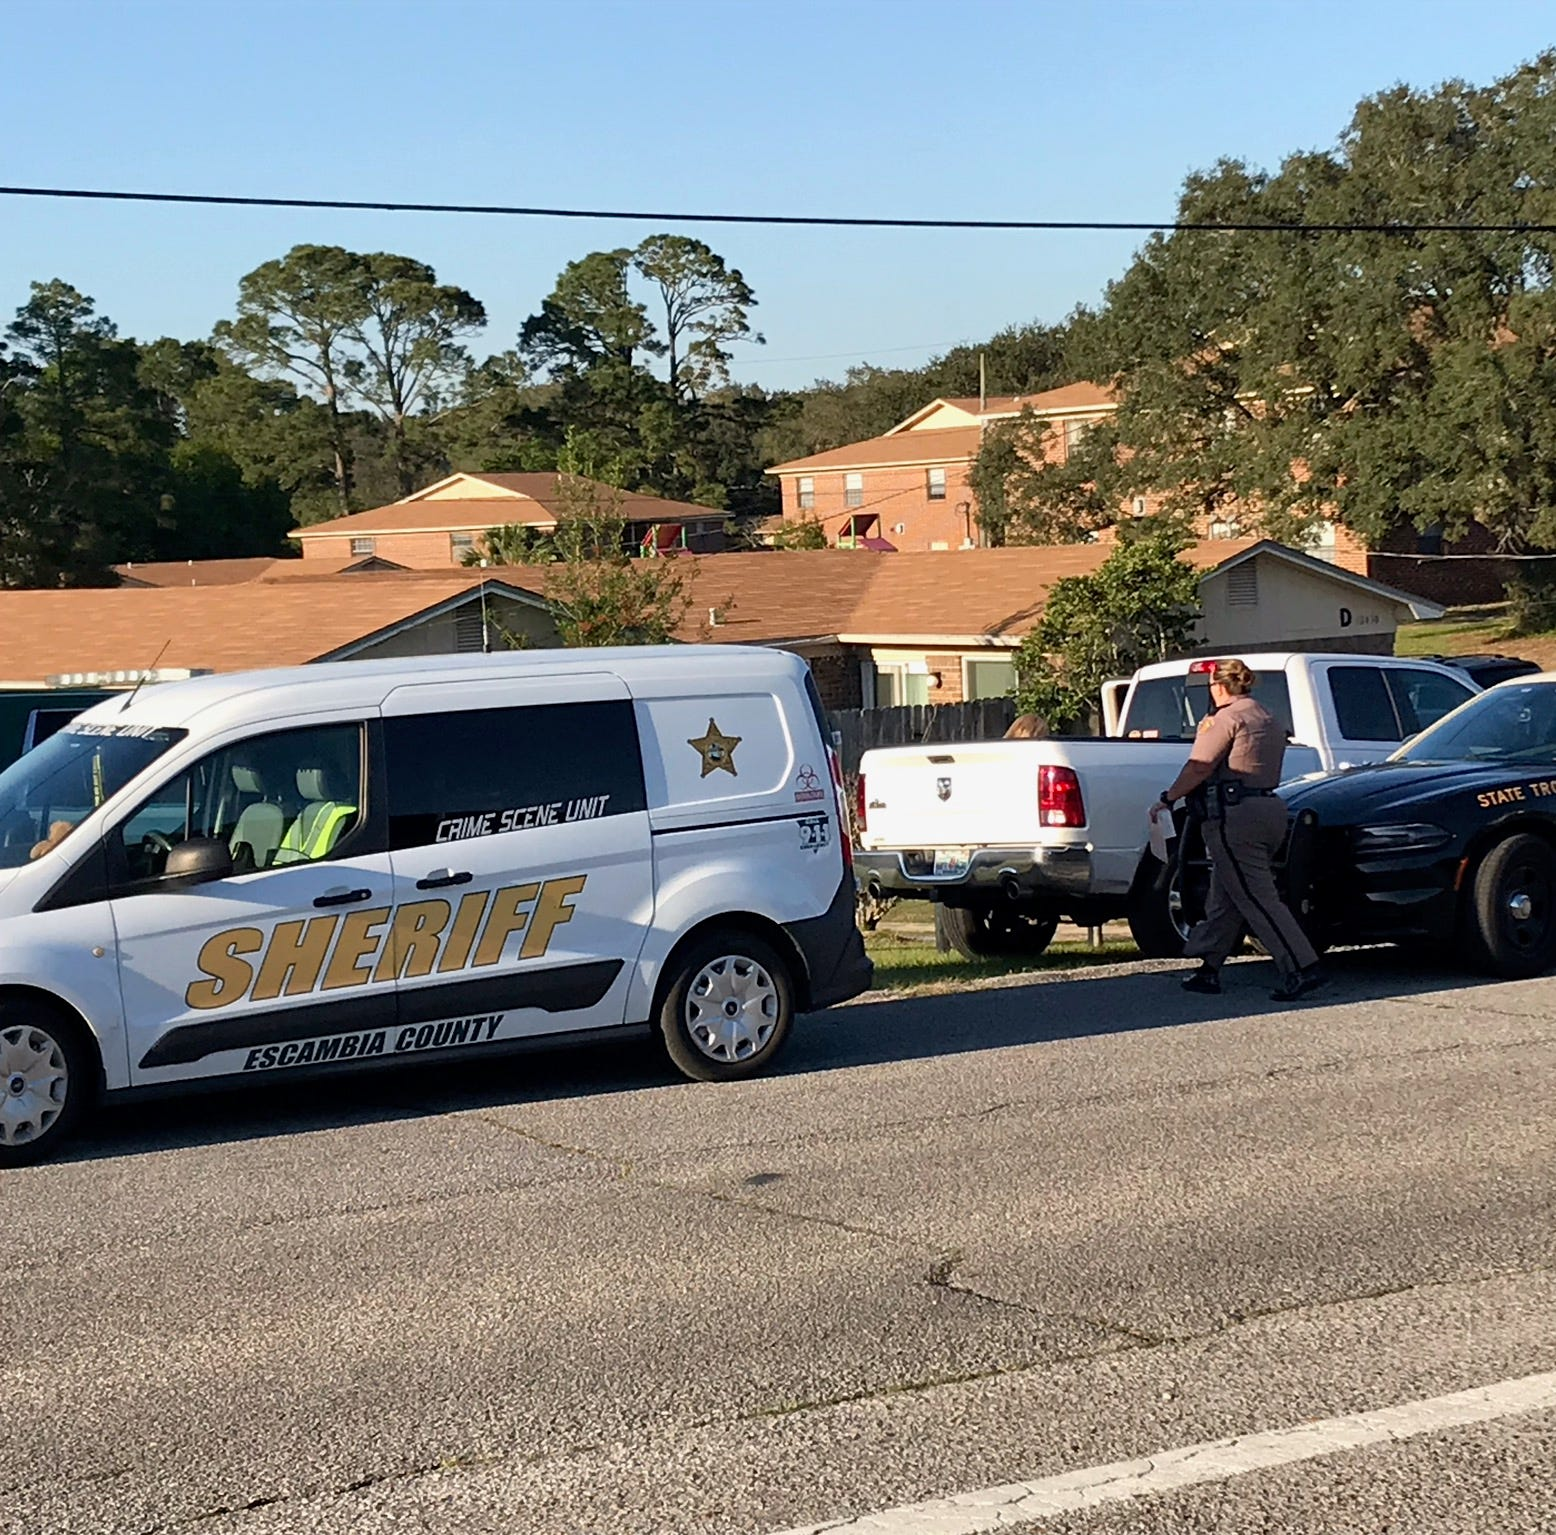 2-year-old found dead in car in Escambia County, authorities investigating